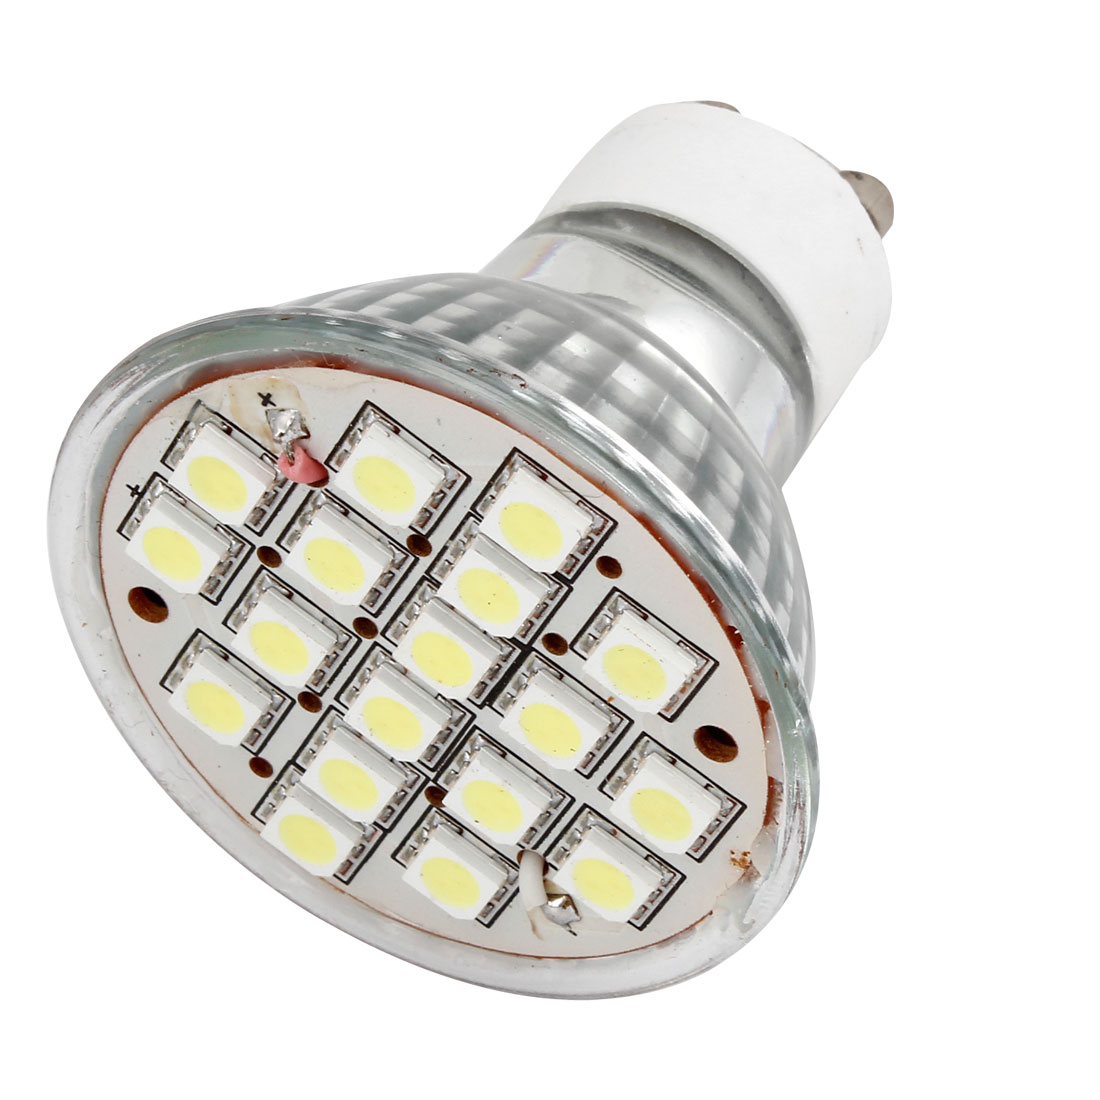 Household 6W GU10 18 5050 SMD White LED Lamp Spotlight Bulb AC 110V